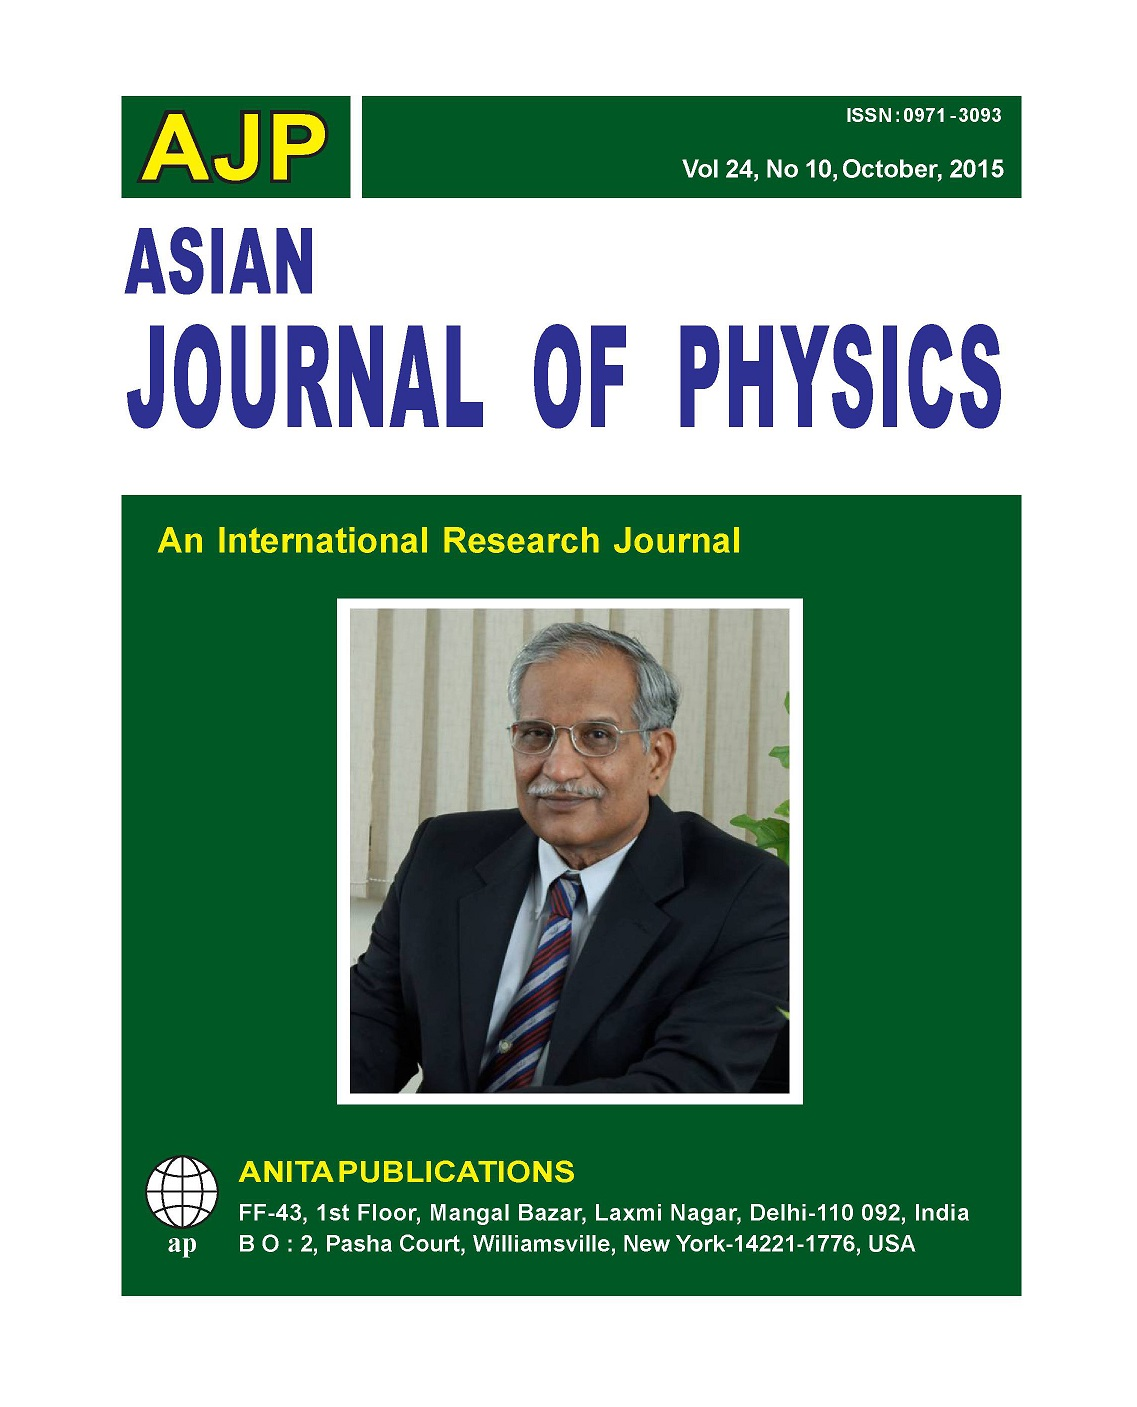 AJP Vol 24 No 10,2015